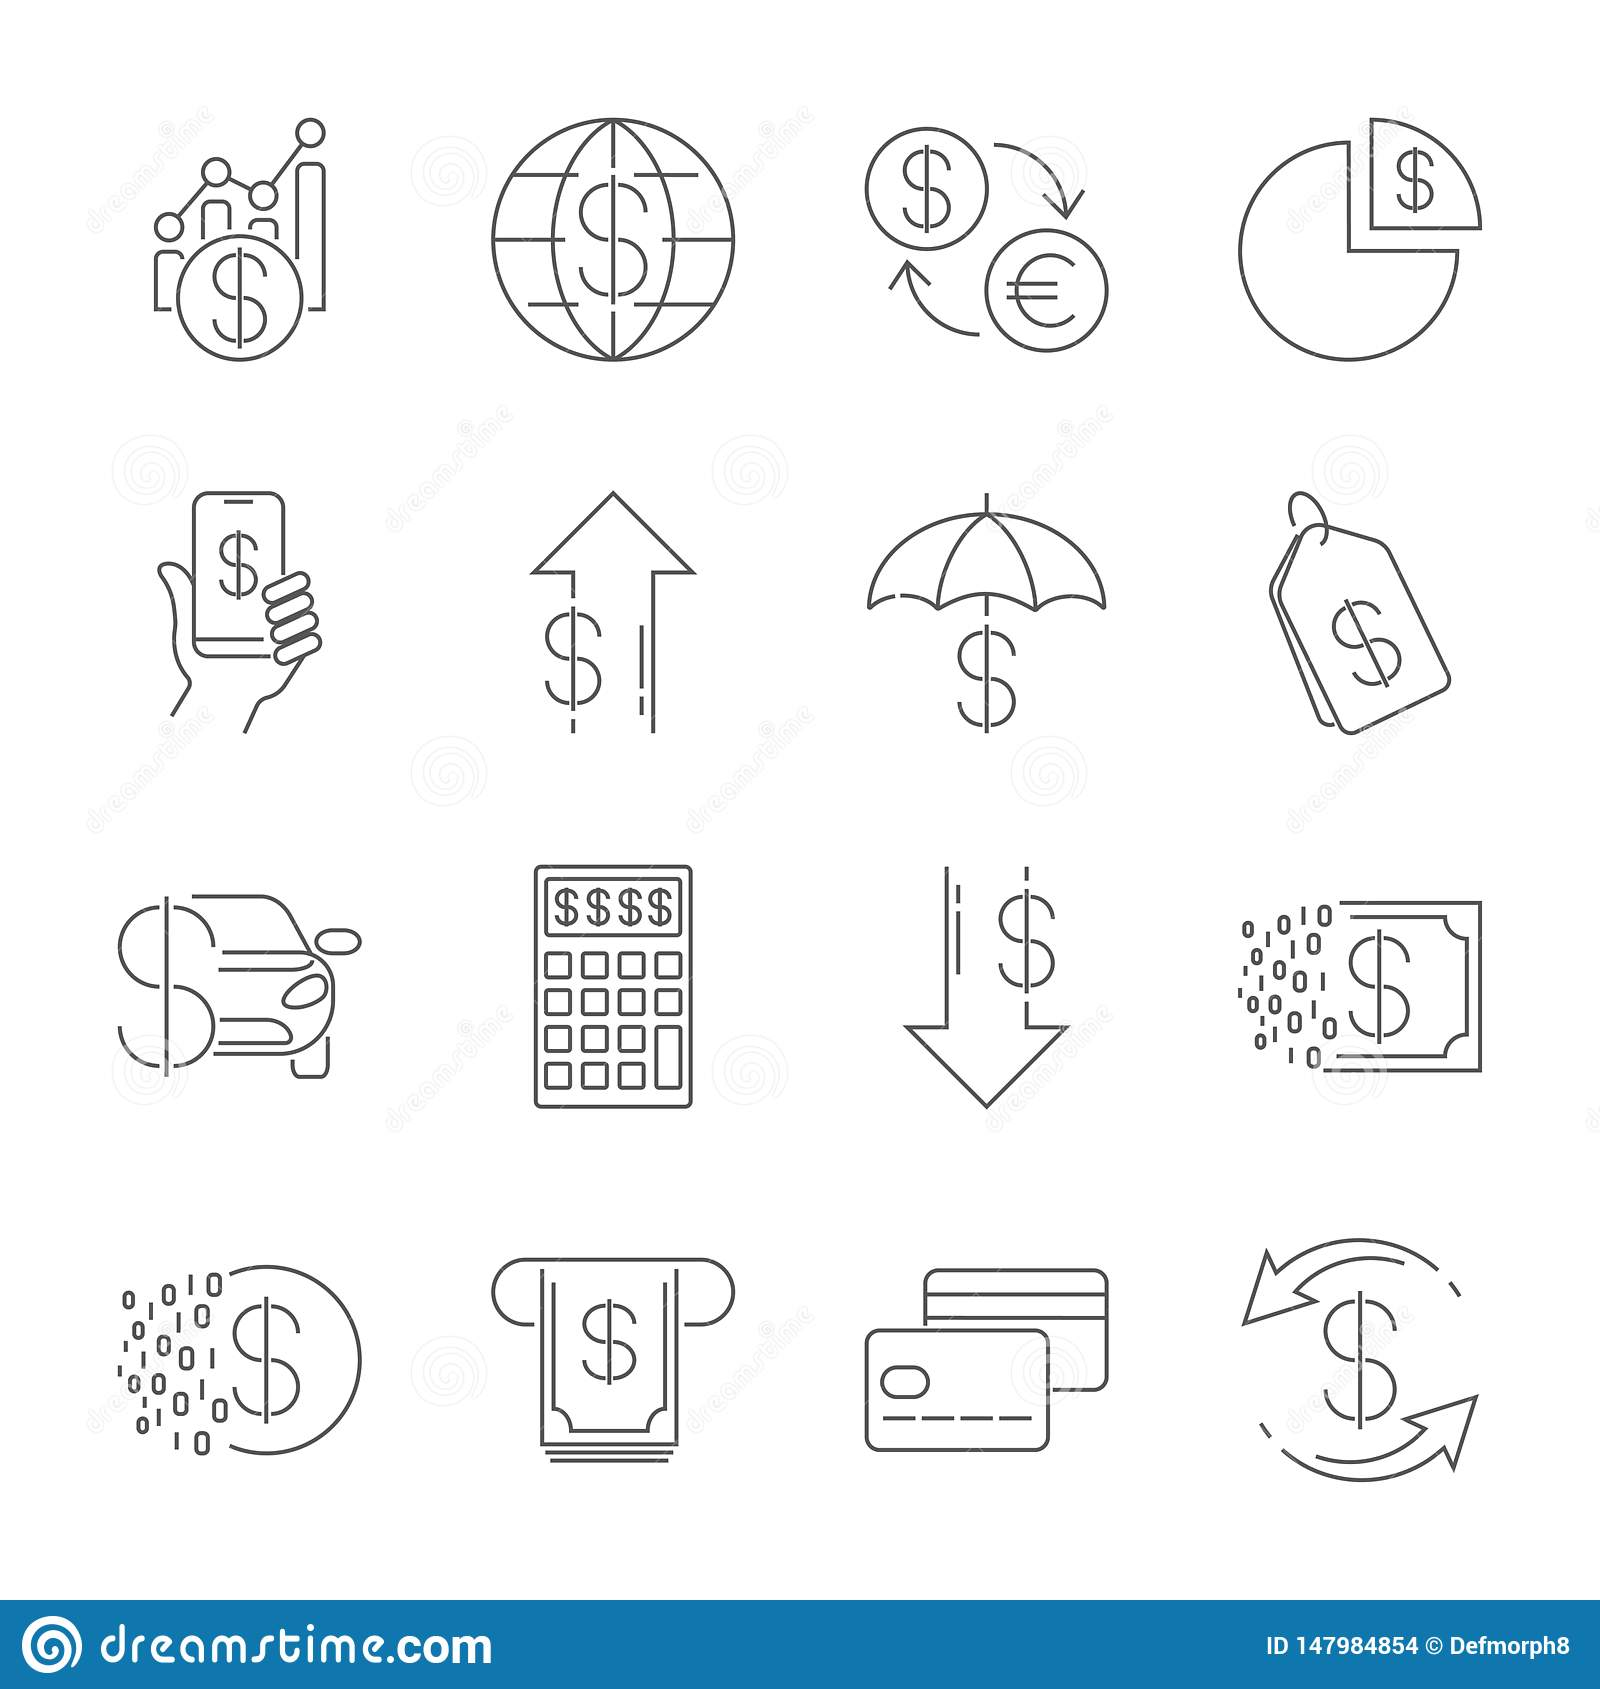 Simple line web icons set - money, finance, payments. Contains such Icons as Wallet, ATM, calculation and more. Editable